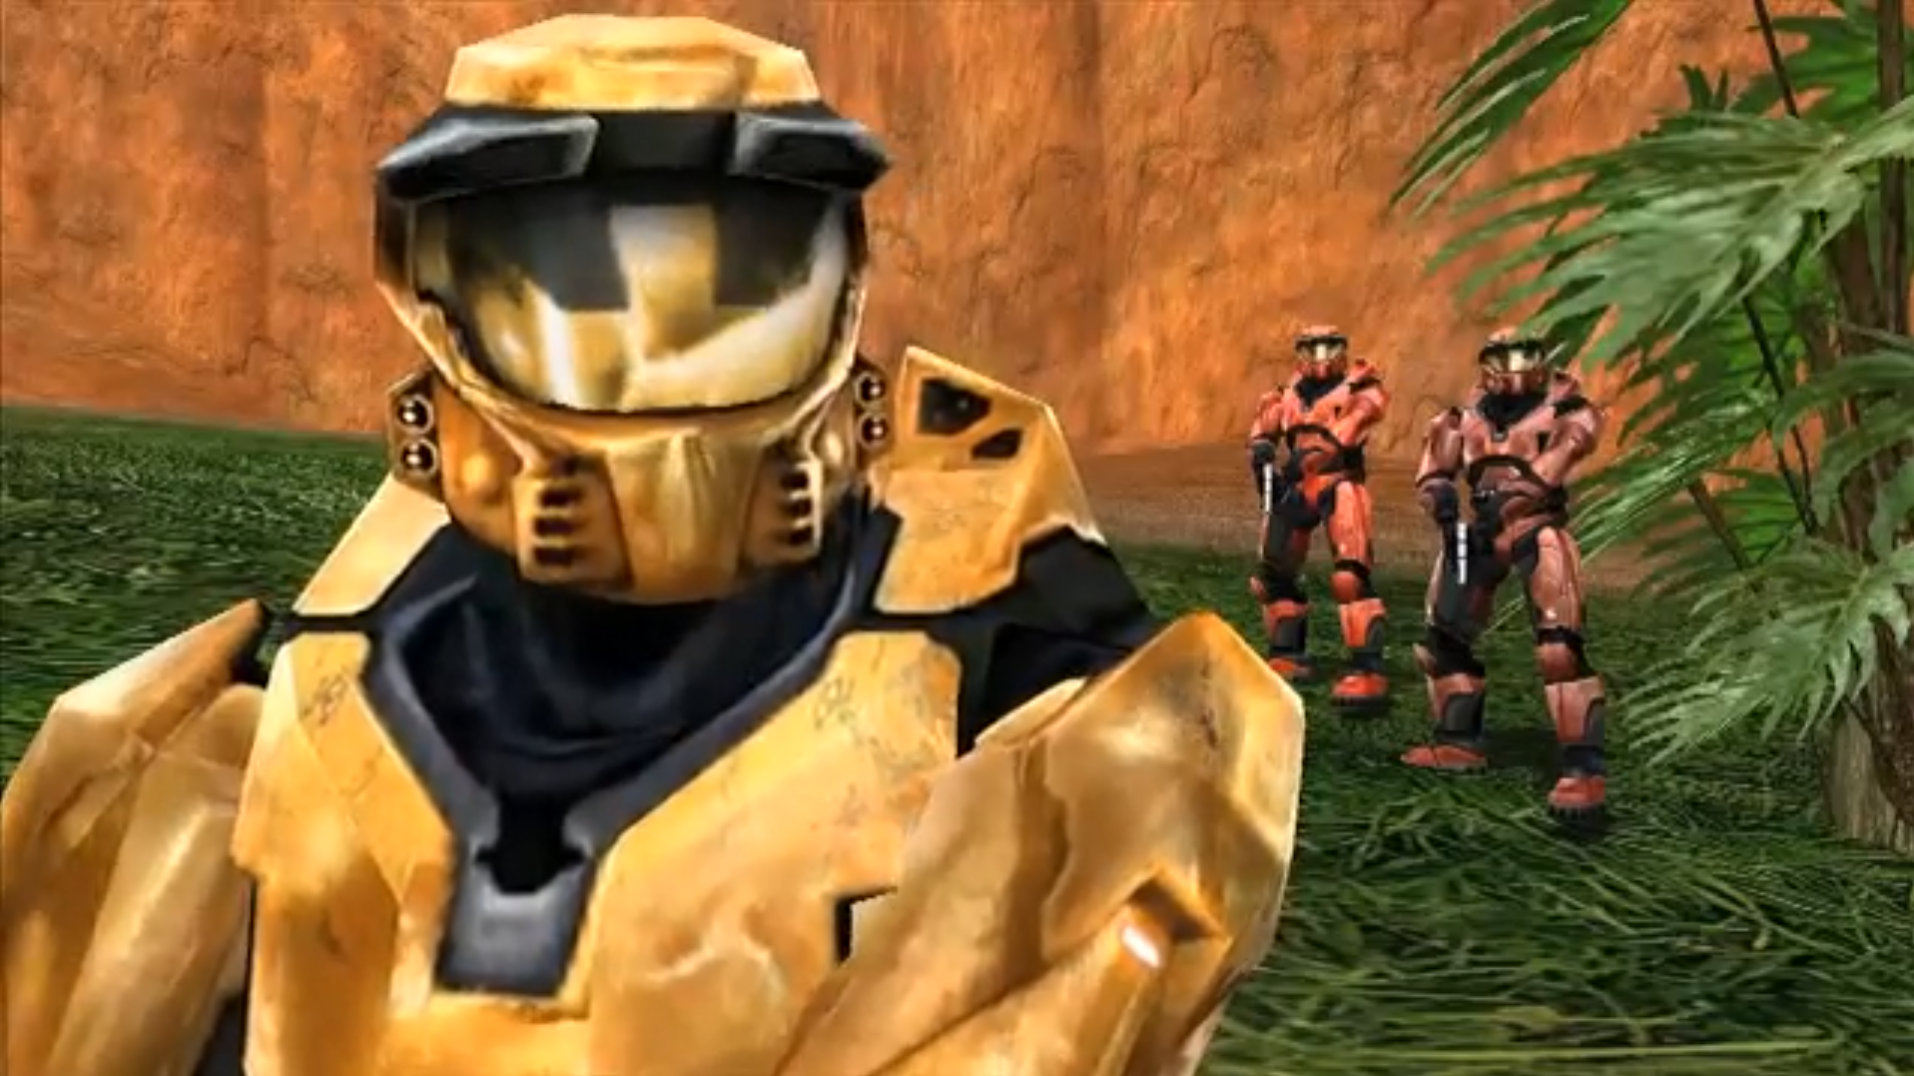 dexter grif red vs blue wiki the unofficial red vs